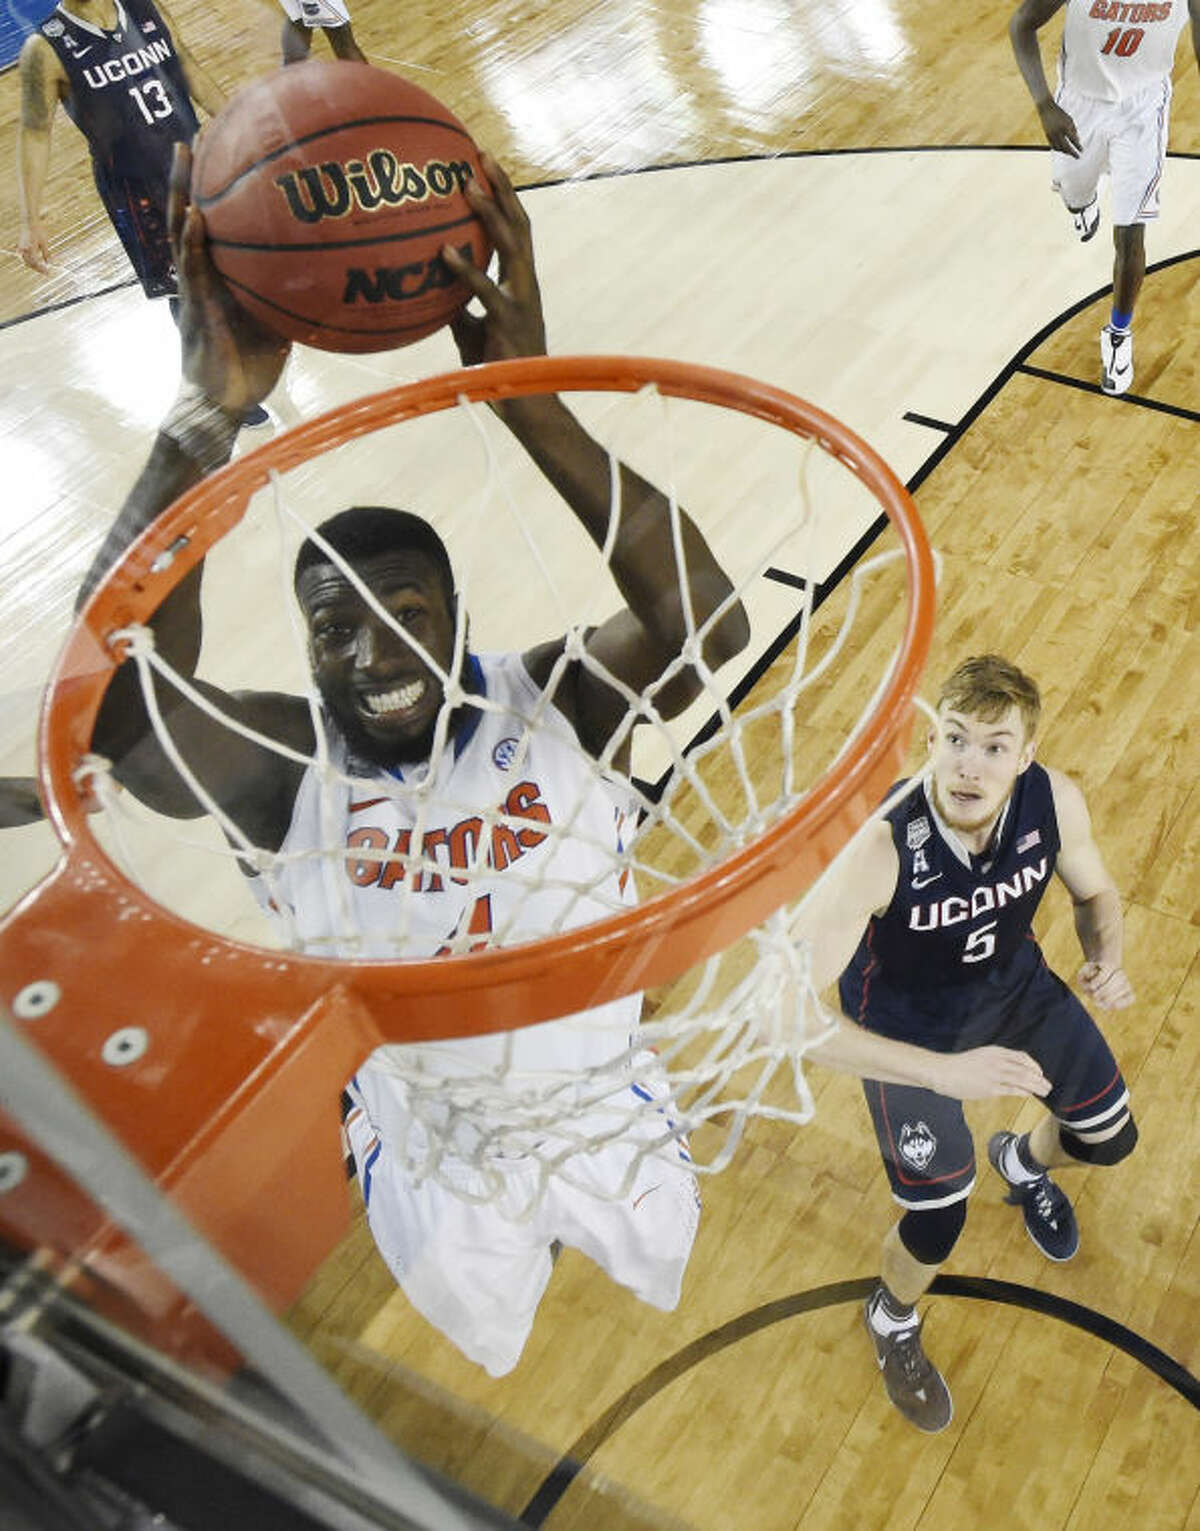 Florida center Patric Young (4) dunks as Connecticut guard/forward Niels Giffey (5) looks on during the second half of the NCAA Final Four tournament college basketball semifinal game Saturday, April 5, 2014, in Arlington, Texas. (AP Photo/Chris Steppig, pool)